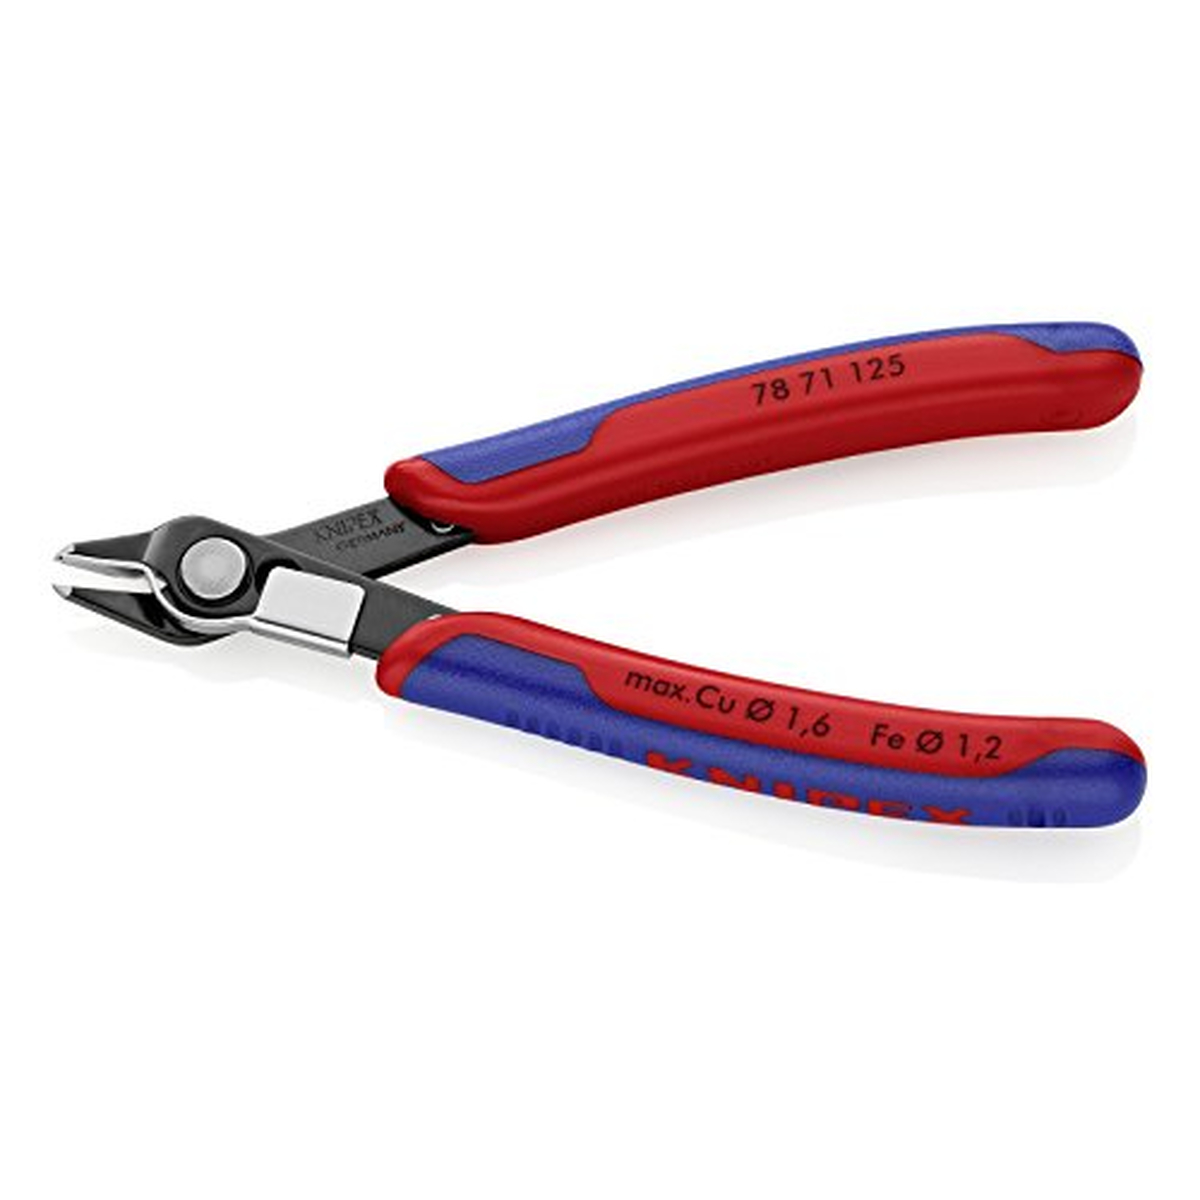 KNIPEX Electronic-Super-Knips® 125 mm, 78 71 125